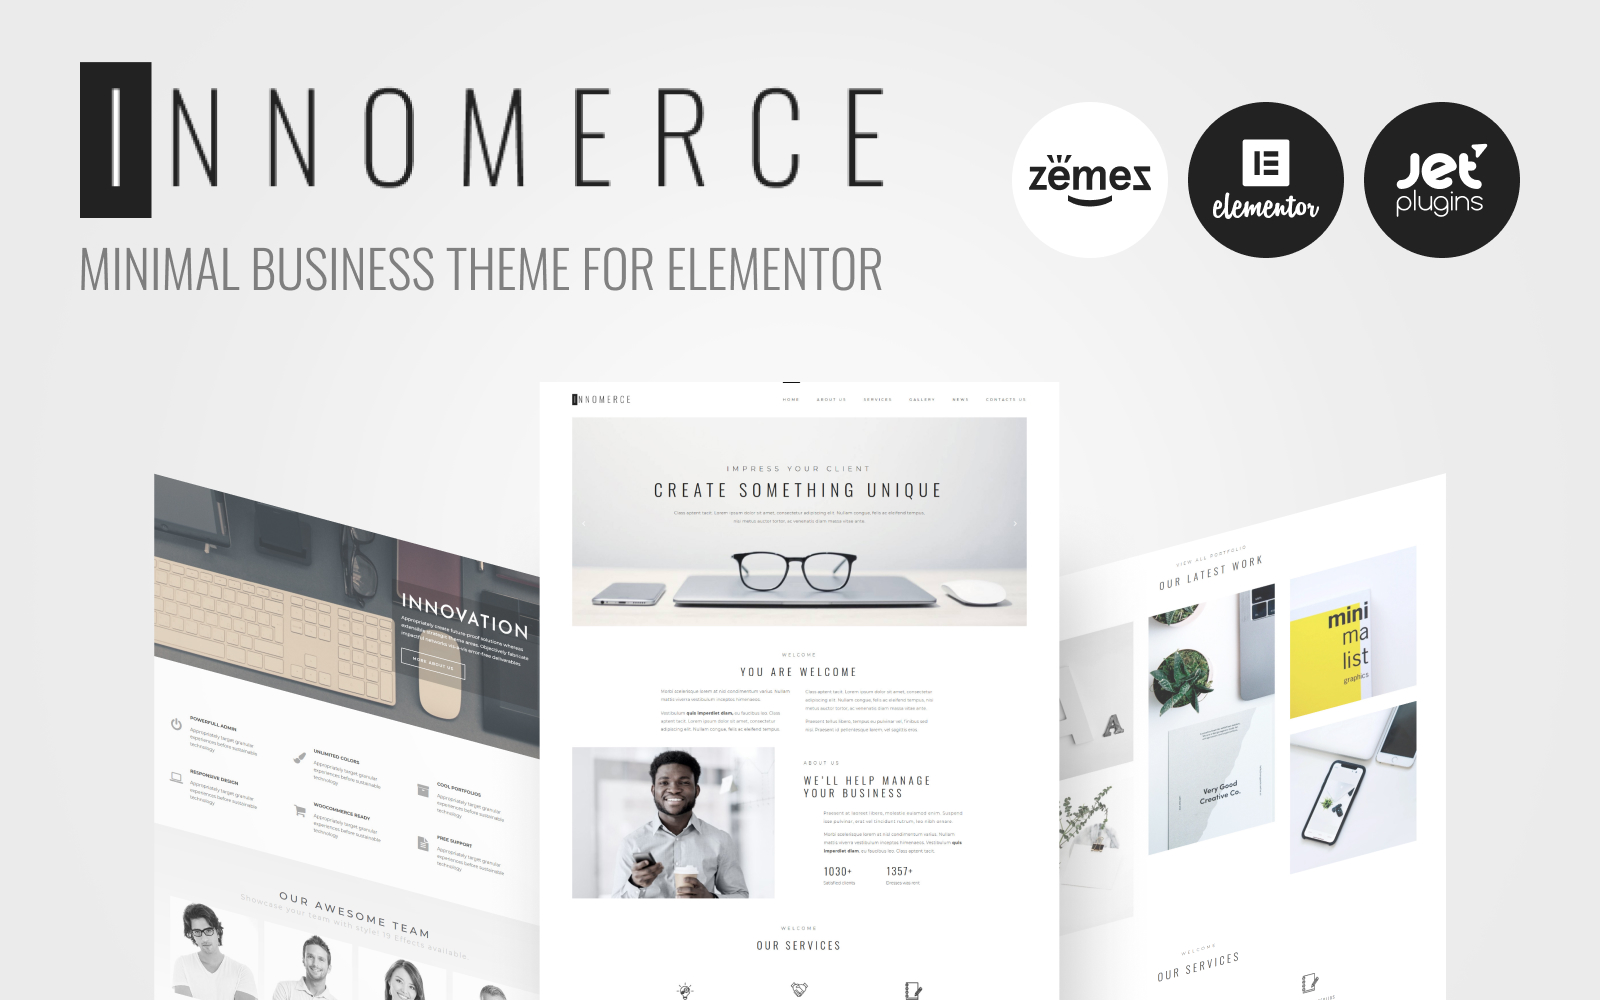 """Innomerce - Business Multipurpose Minimal Elementor"" 响应式WordPress模板 #81170"